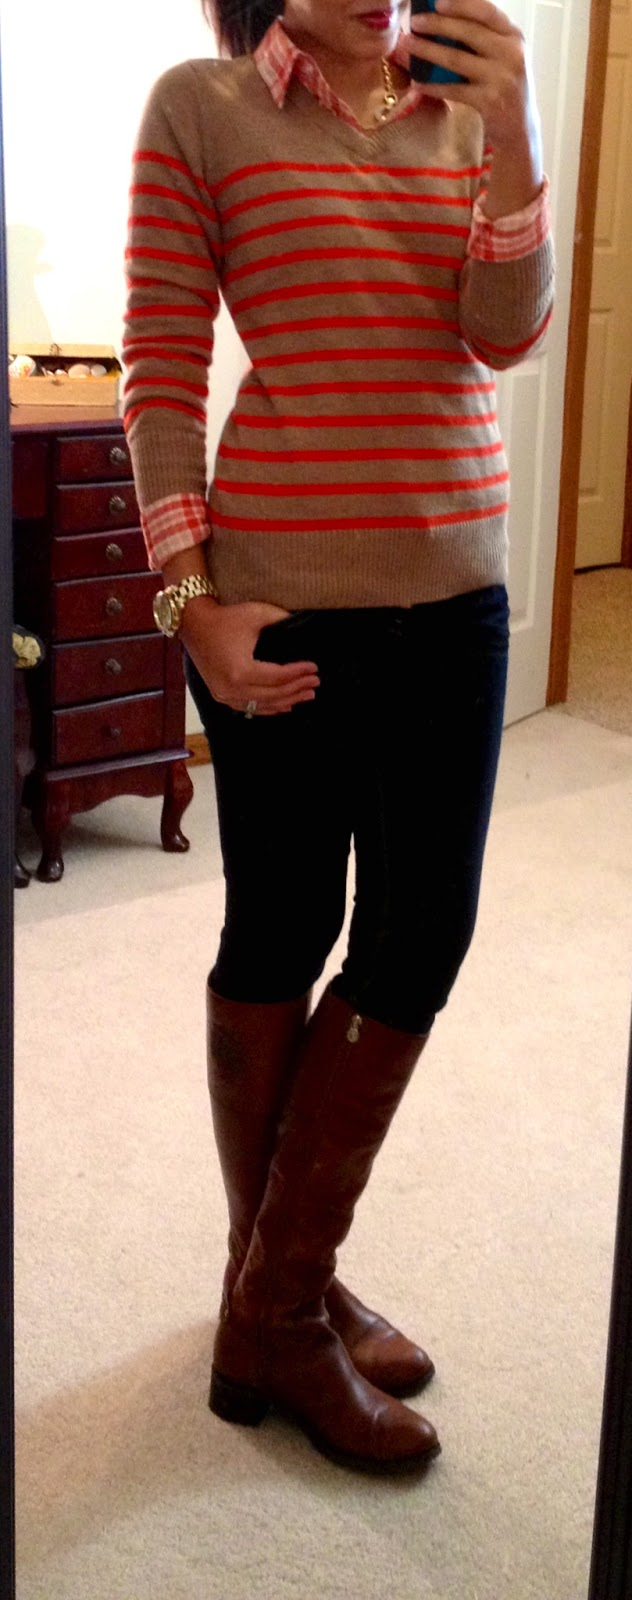 plaid button up, striped sweater, jeans, & boots